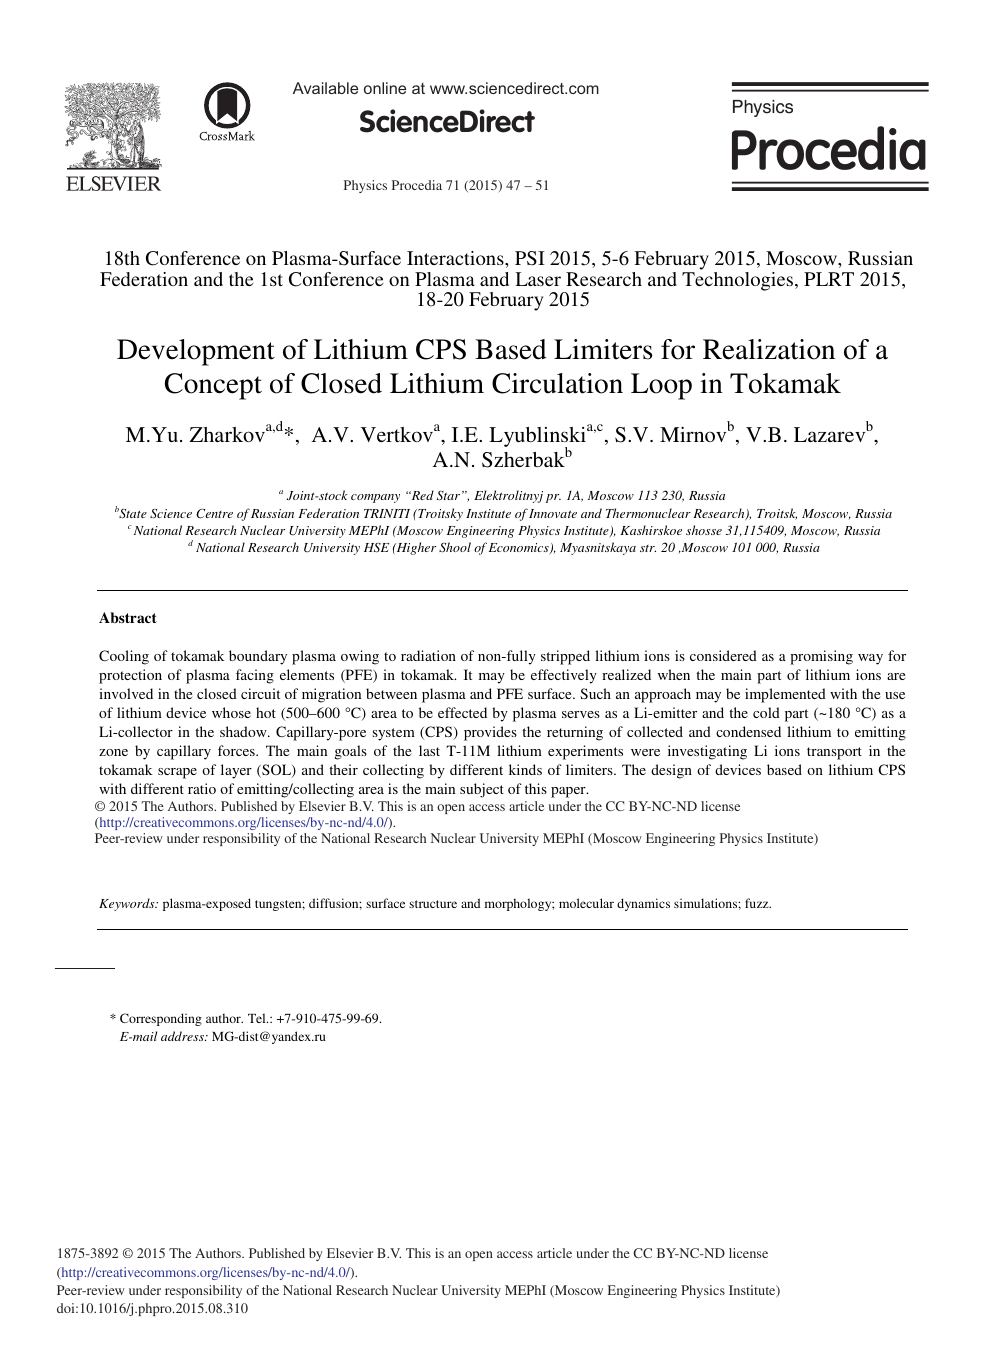 Development of Lithium CPS Based Limiters for Realization of